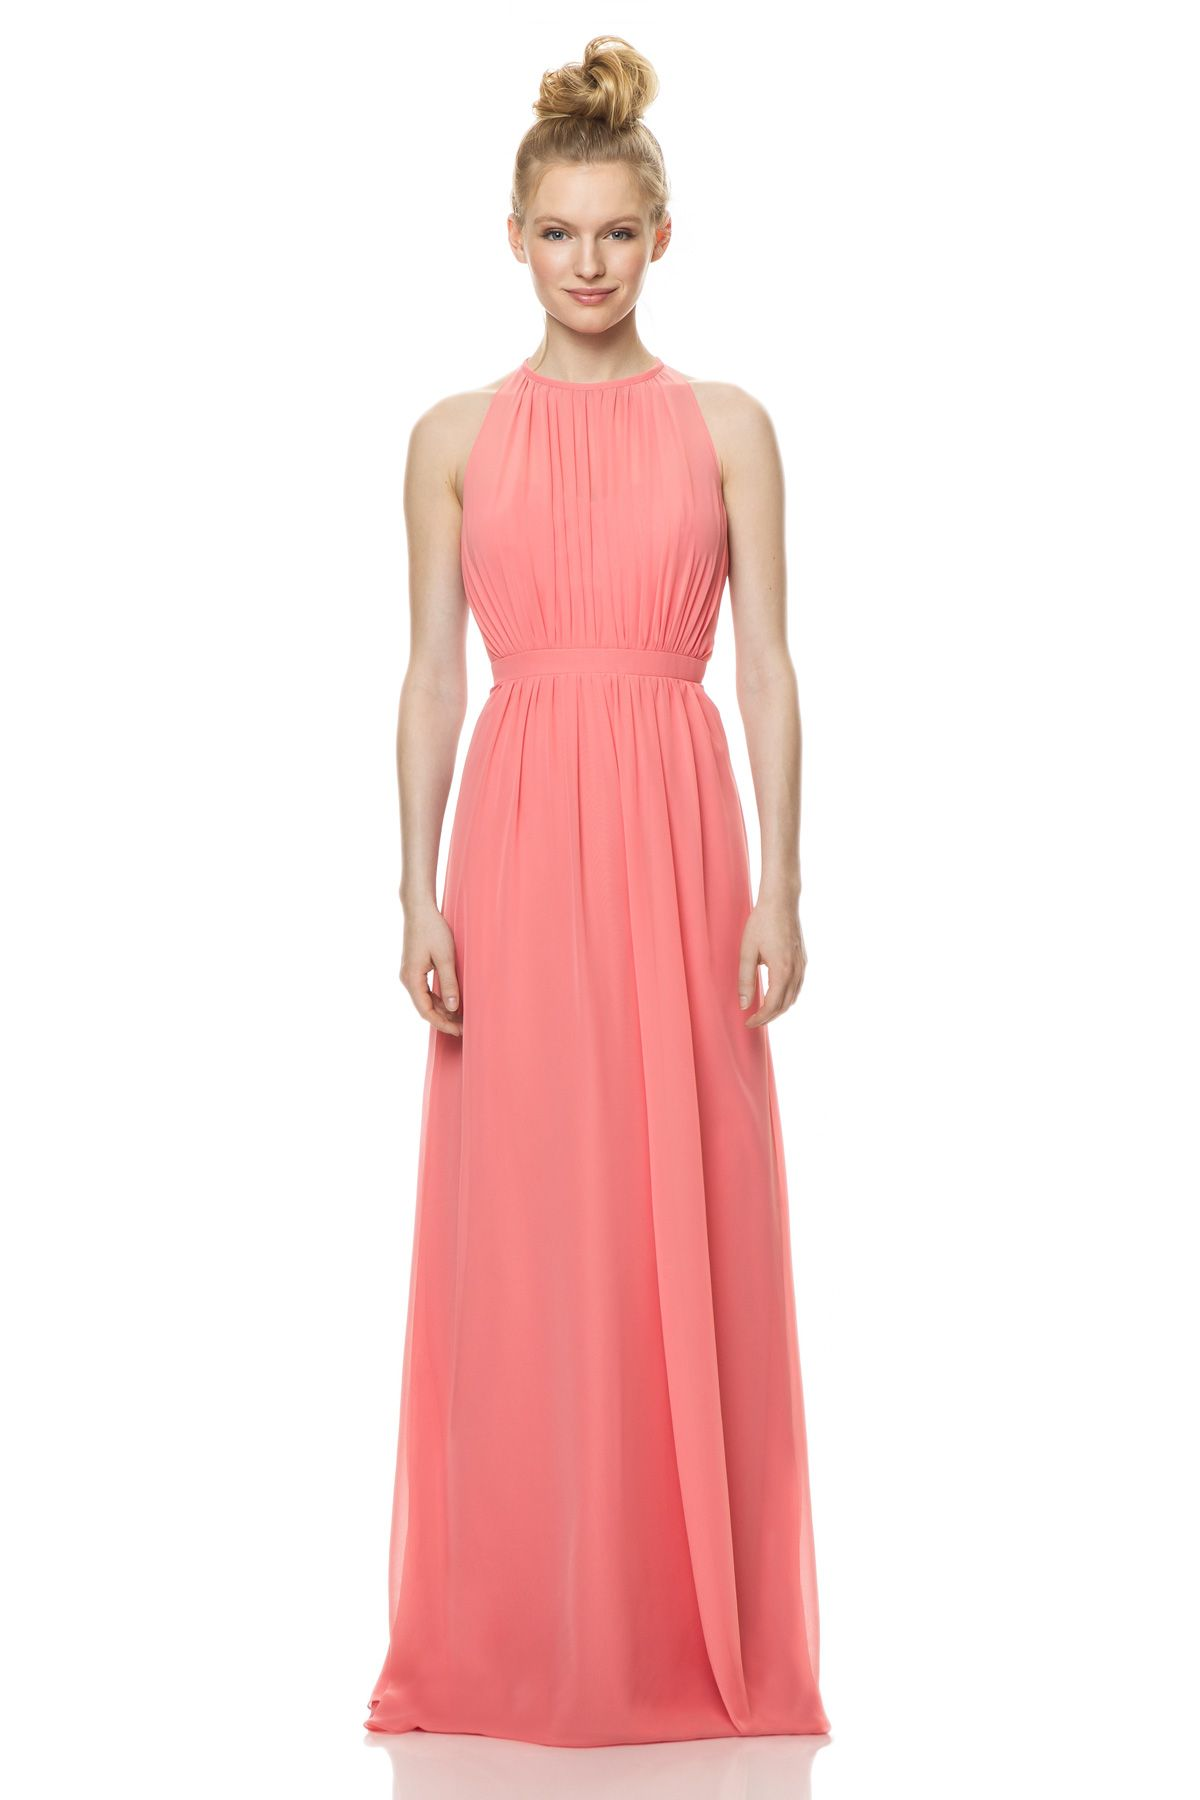 Click the link and check out this dress in \